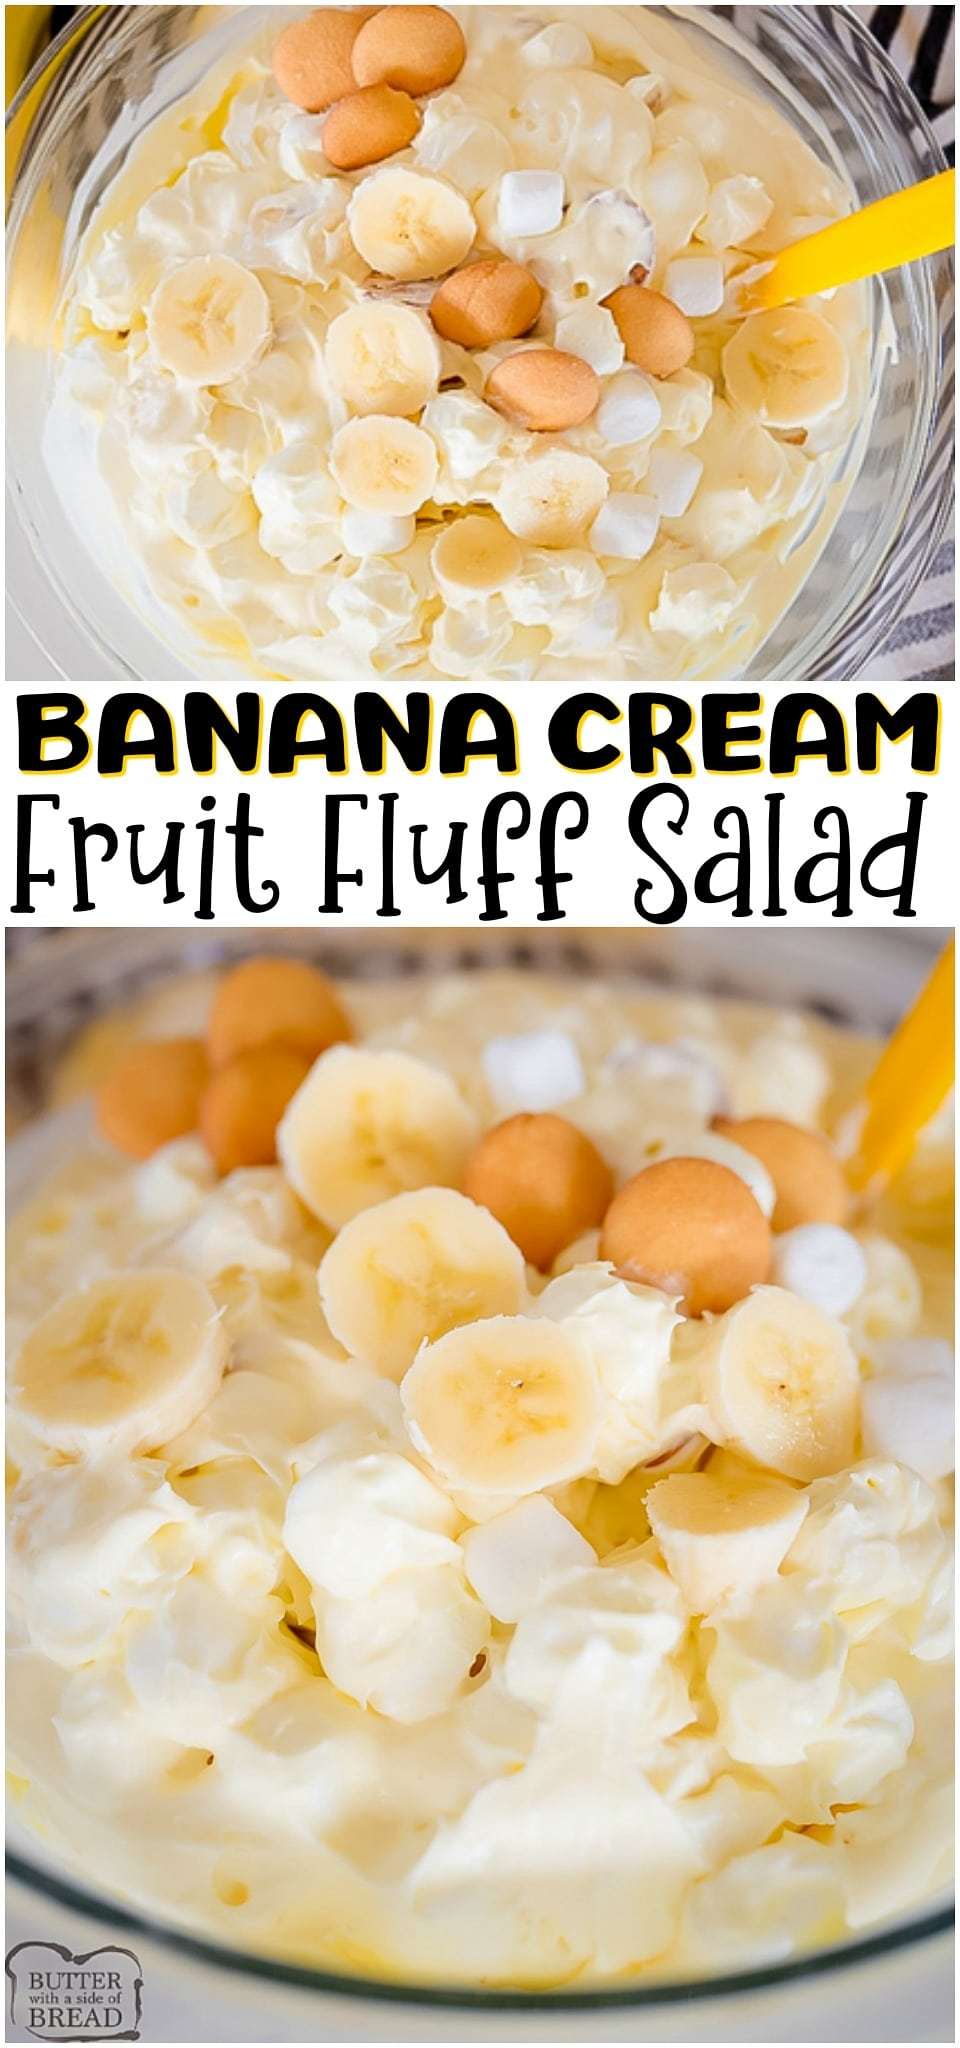 Banana Cream Fluff Salad made with bananas, yogurt, pudding mix and sweet cream. Perfect 10-minute sweet dessert salad for banana cream pie lovers! #fluffsalad #fruitsalad #banana #bananacream #dessert #bananas #recipe from BUTTER WITH A SIDE OF BREAD